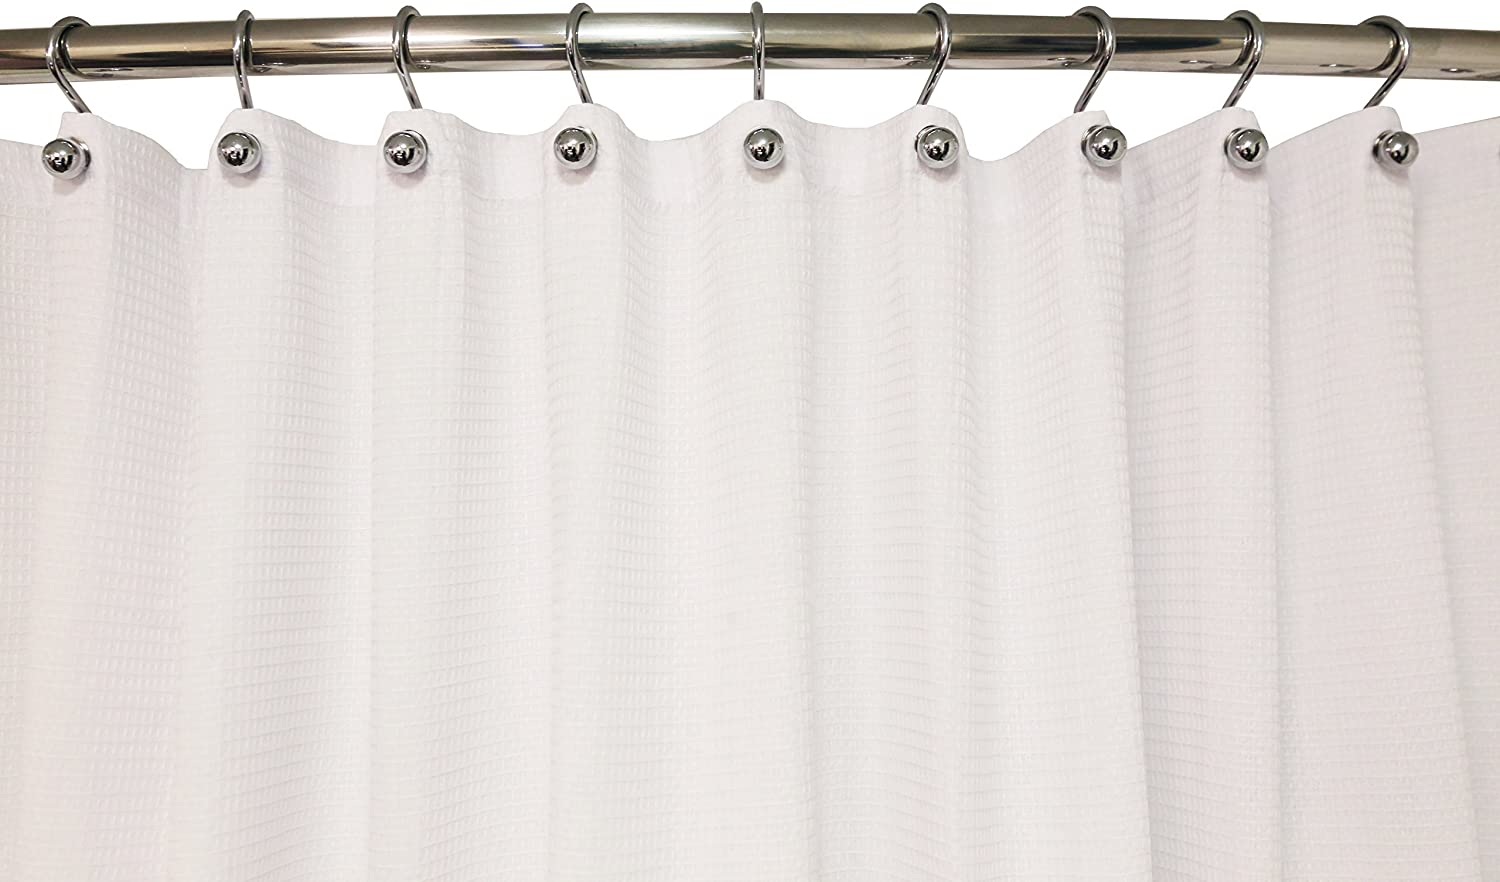 Hermosa Collection Luxury Hotel Quality Shower Curtain Hooks Silver Chrome Finish Rings S Hook 12-pk.